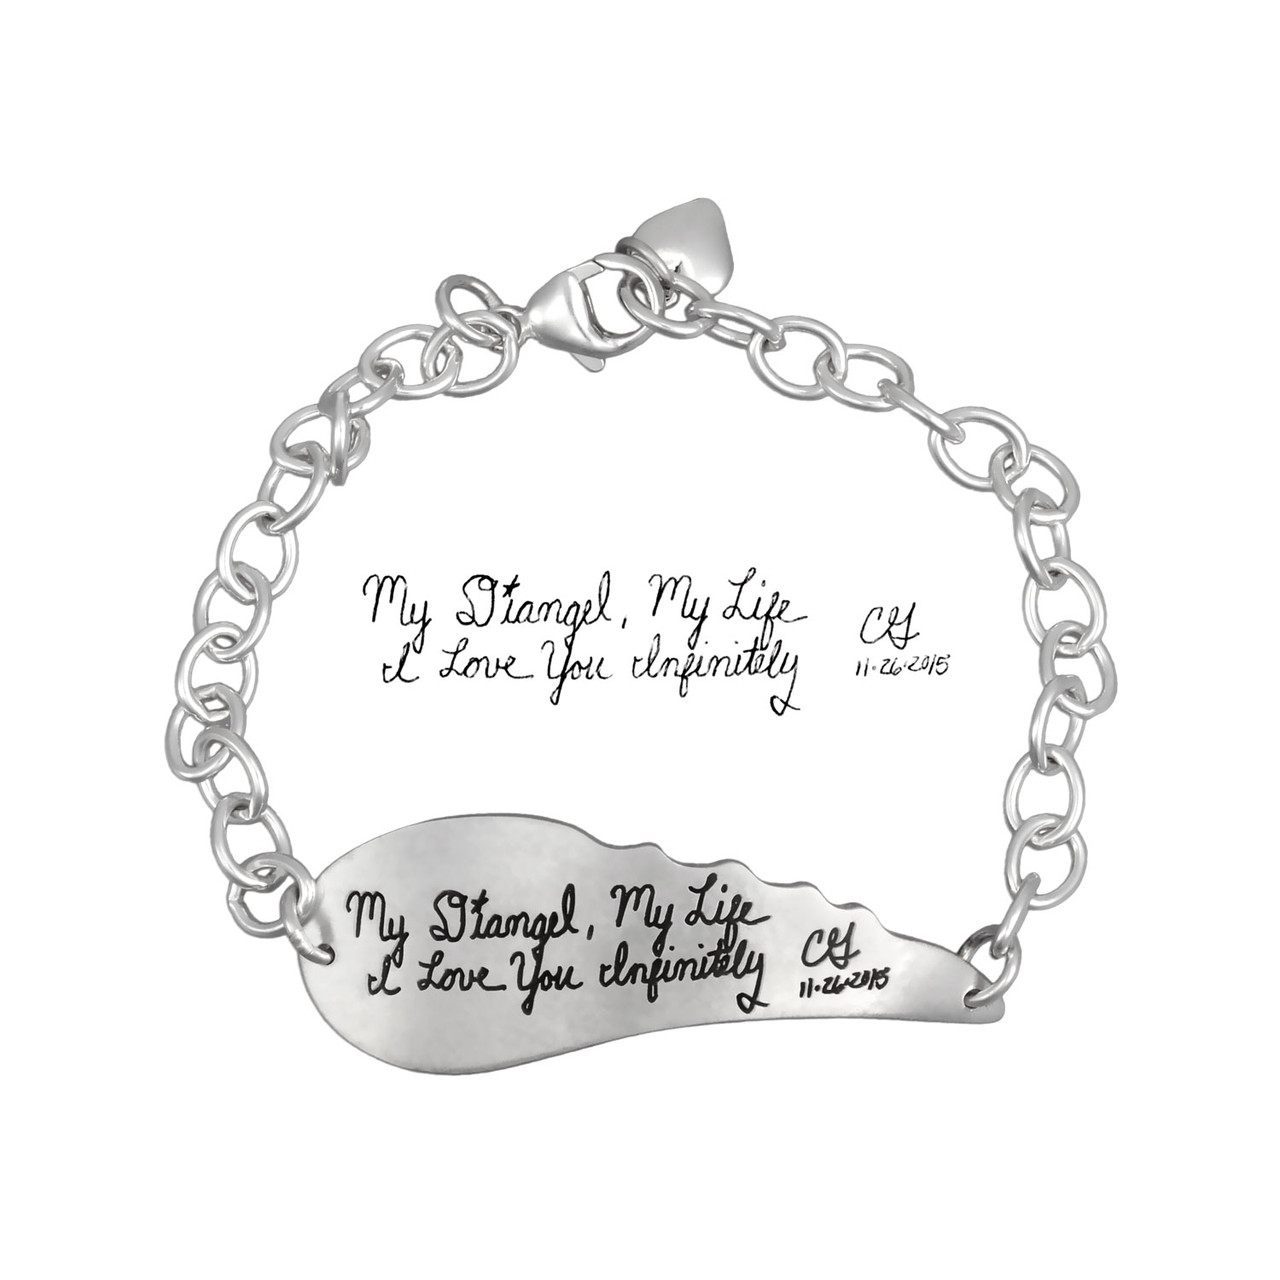 Signature Bracelet Custom Made with Handwriting From a Loved One,shown with original handwriting